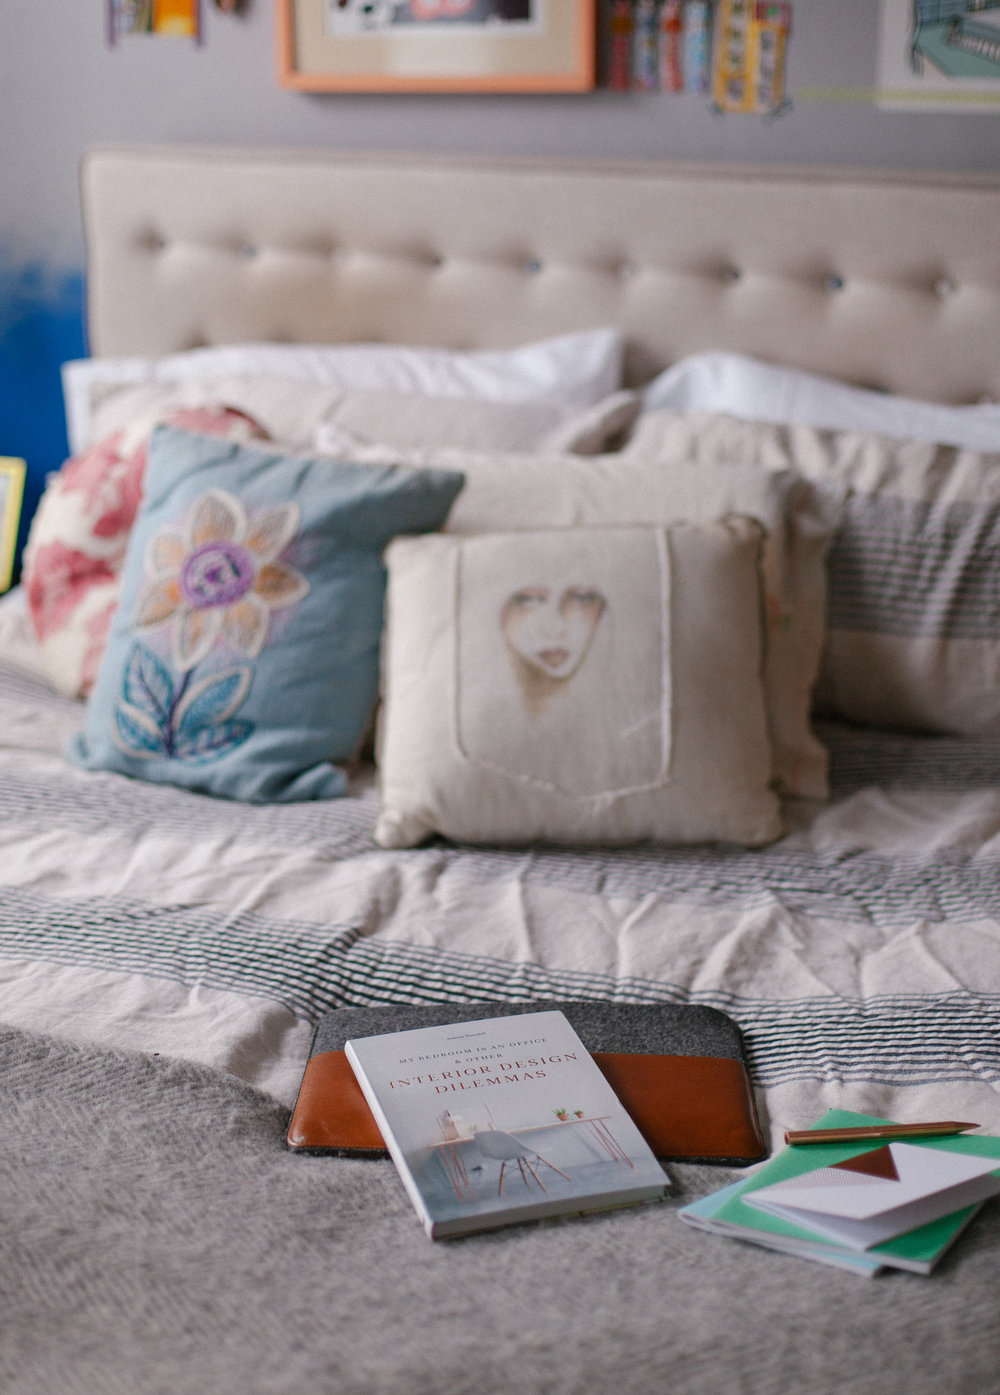 My Bedroom Is an Office by Joanna Thornhill Lifestyle Cover Shot on Bed